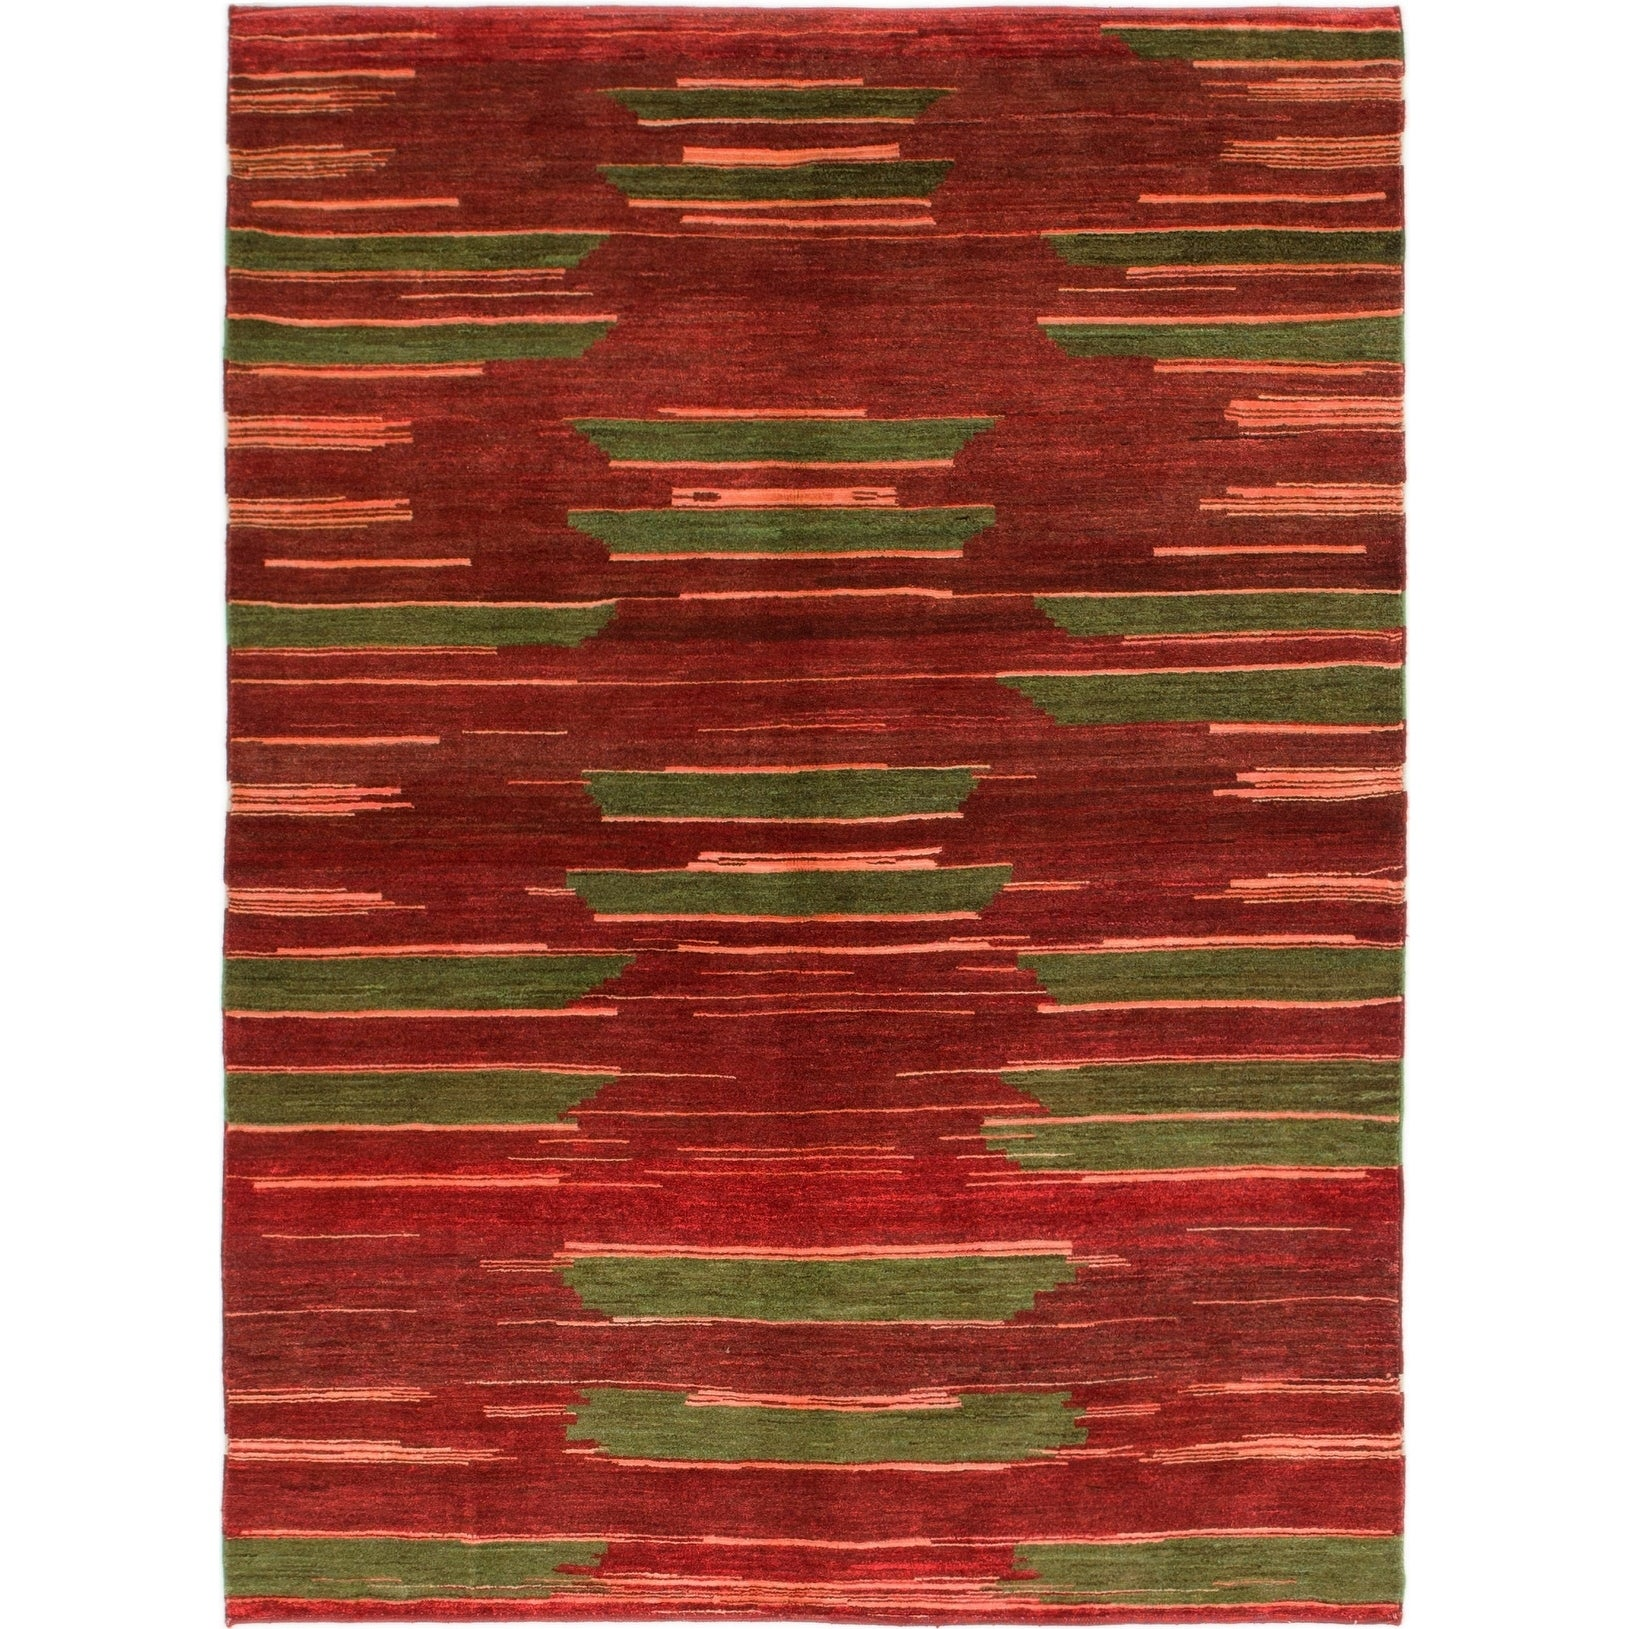 Hand Knotted Kashkuli Gabbeh Wool Area Rug - 5 x 6 9 (Red - 5 x 6 9)